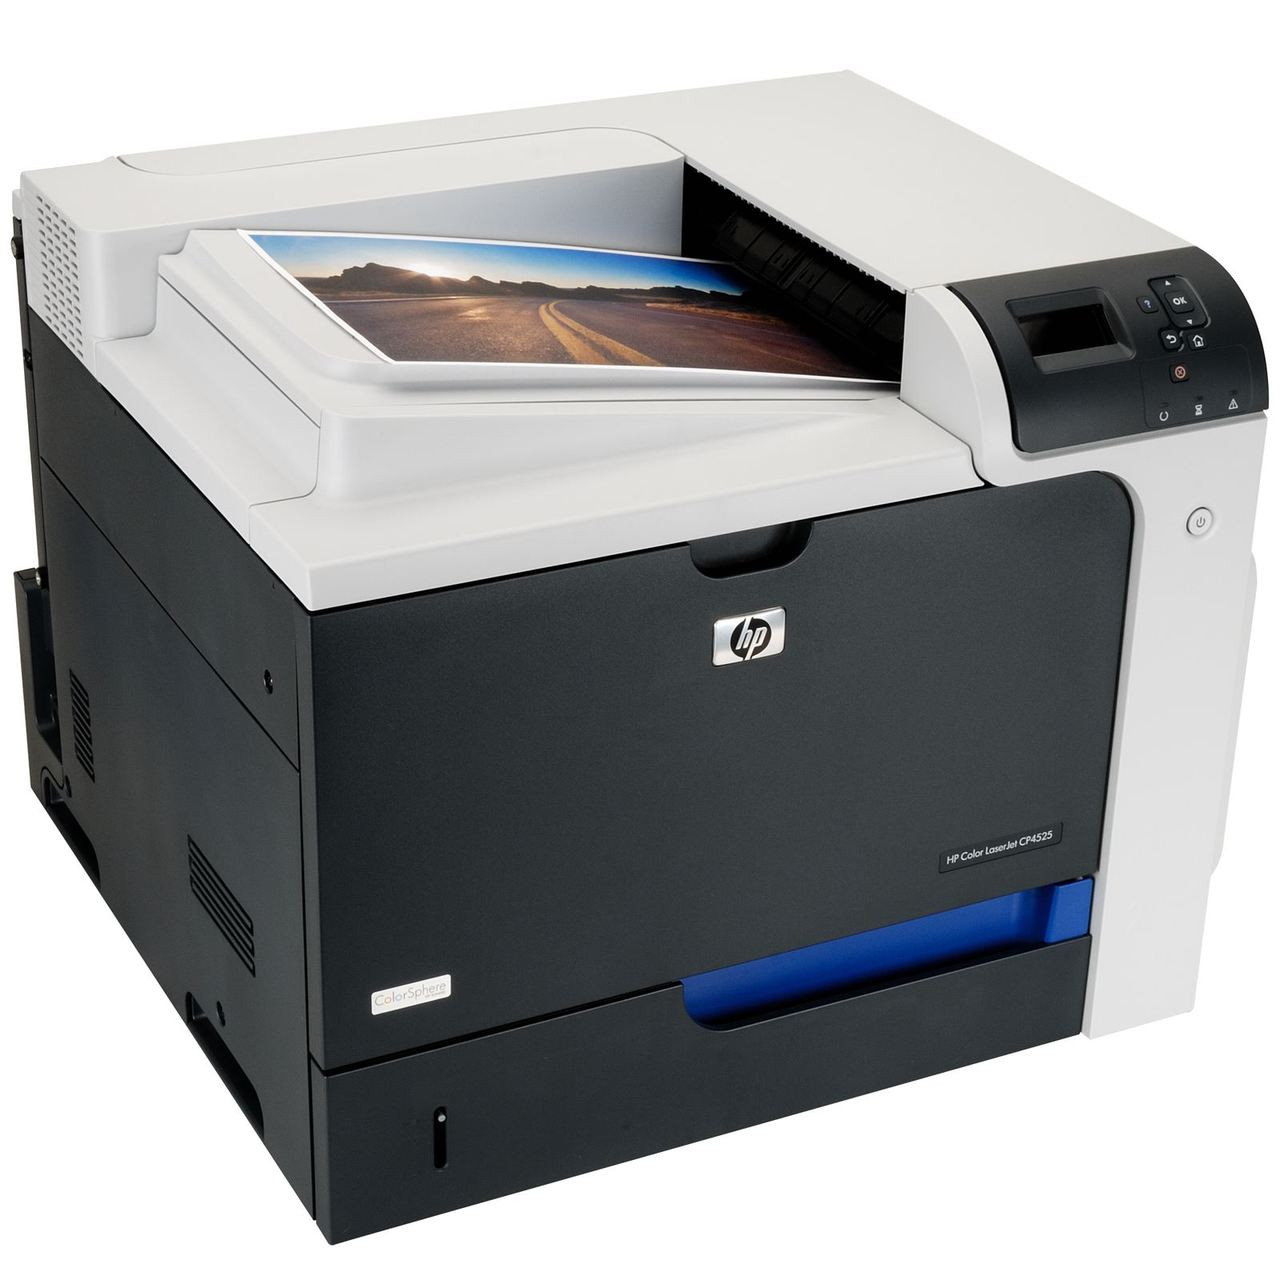 HP Color LaserJet CP4525DN - CC494A - HP LASER PRINTER FOR SALE